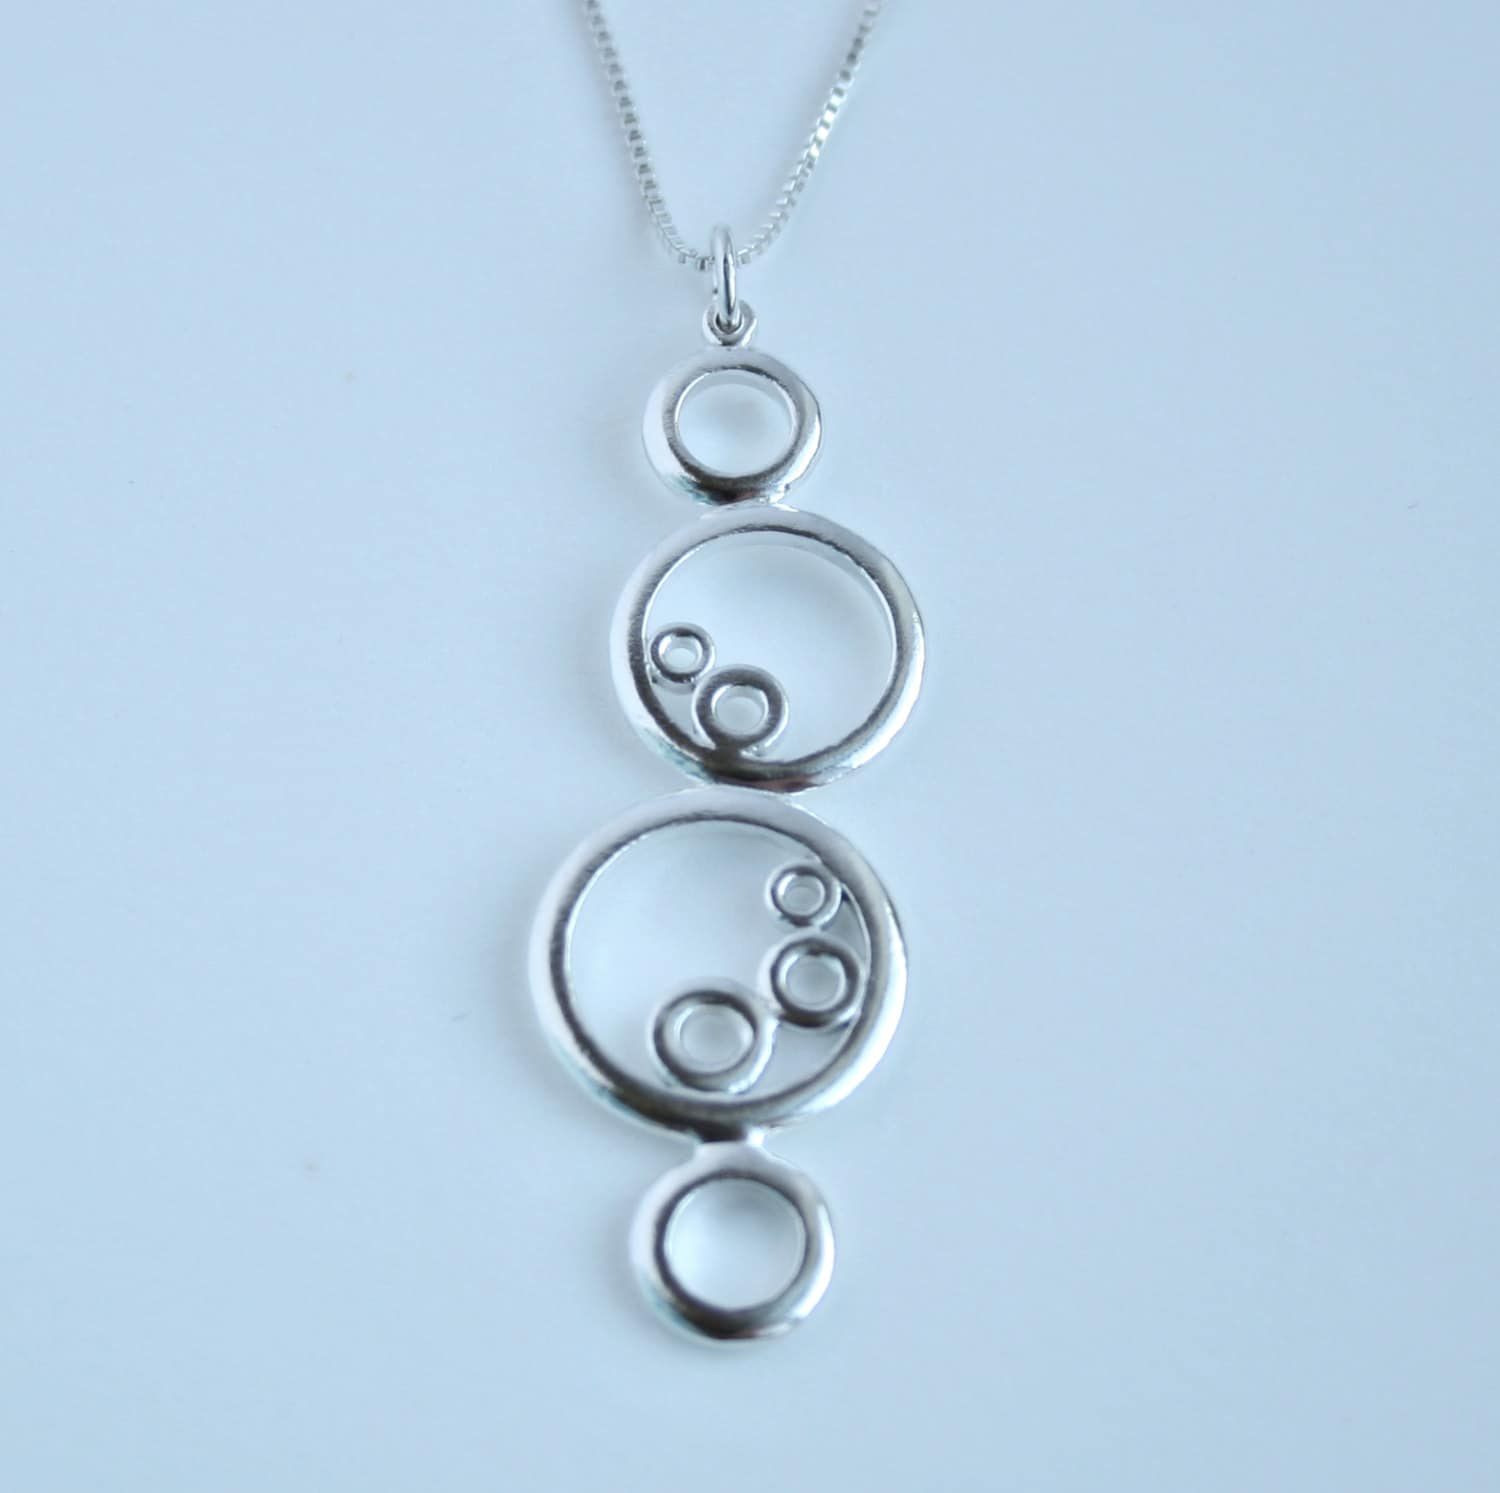 circle necklace sterling silver nine circles jewelry unique